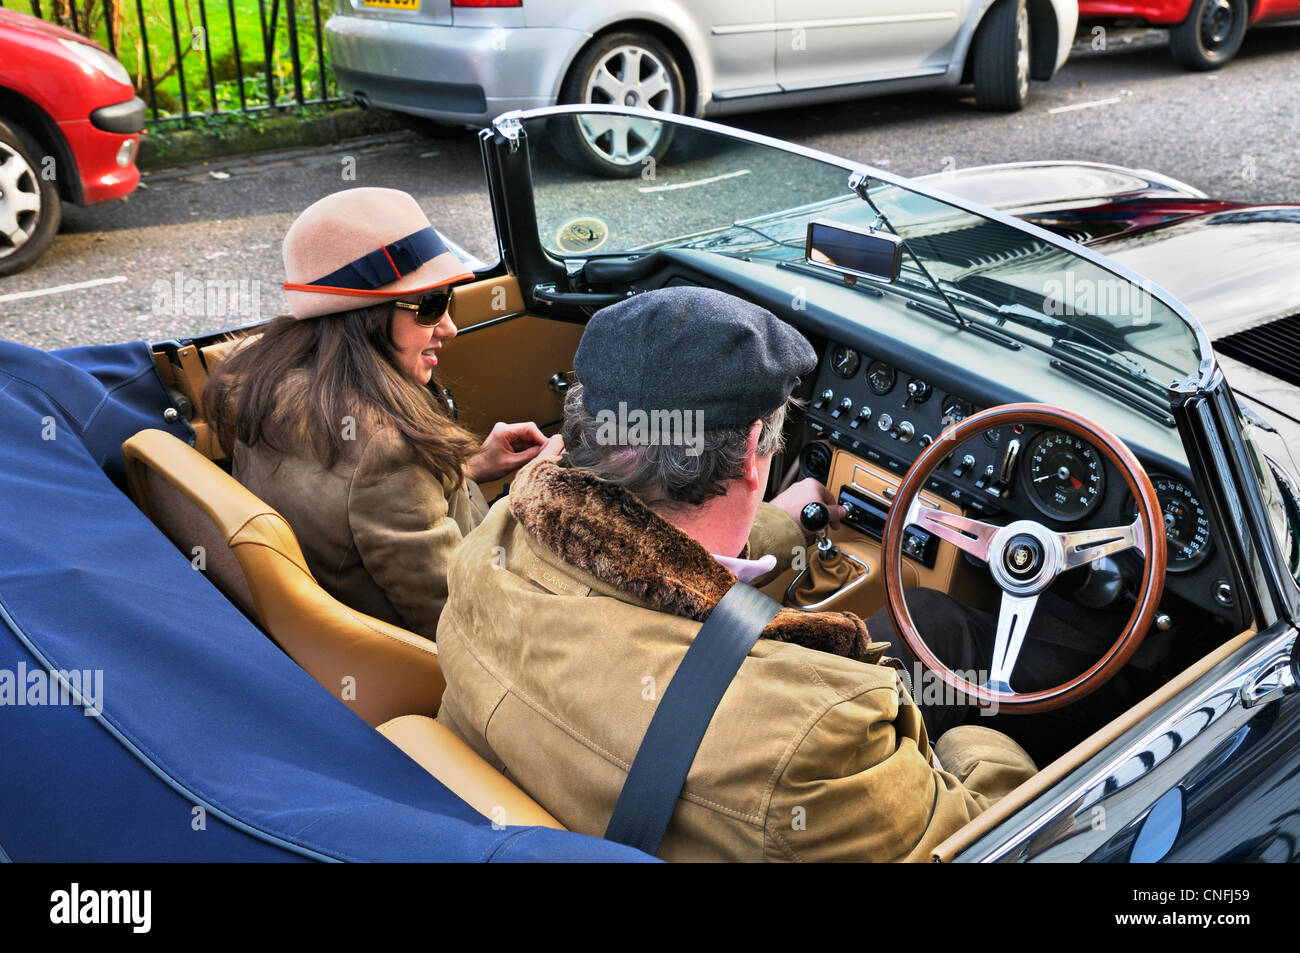 Lady and gent sitting in a E-type Jaguar classic car, London, England, UK - Stock Image